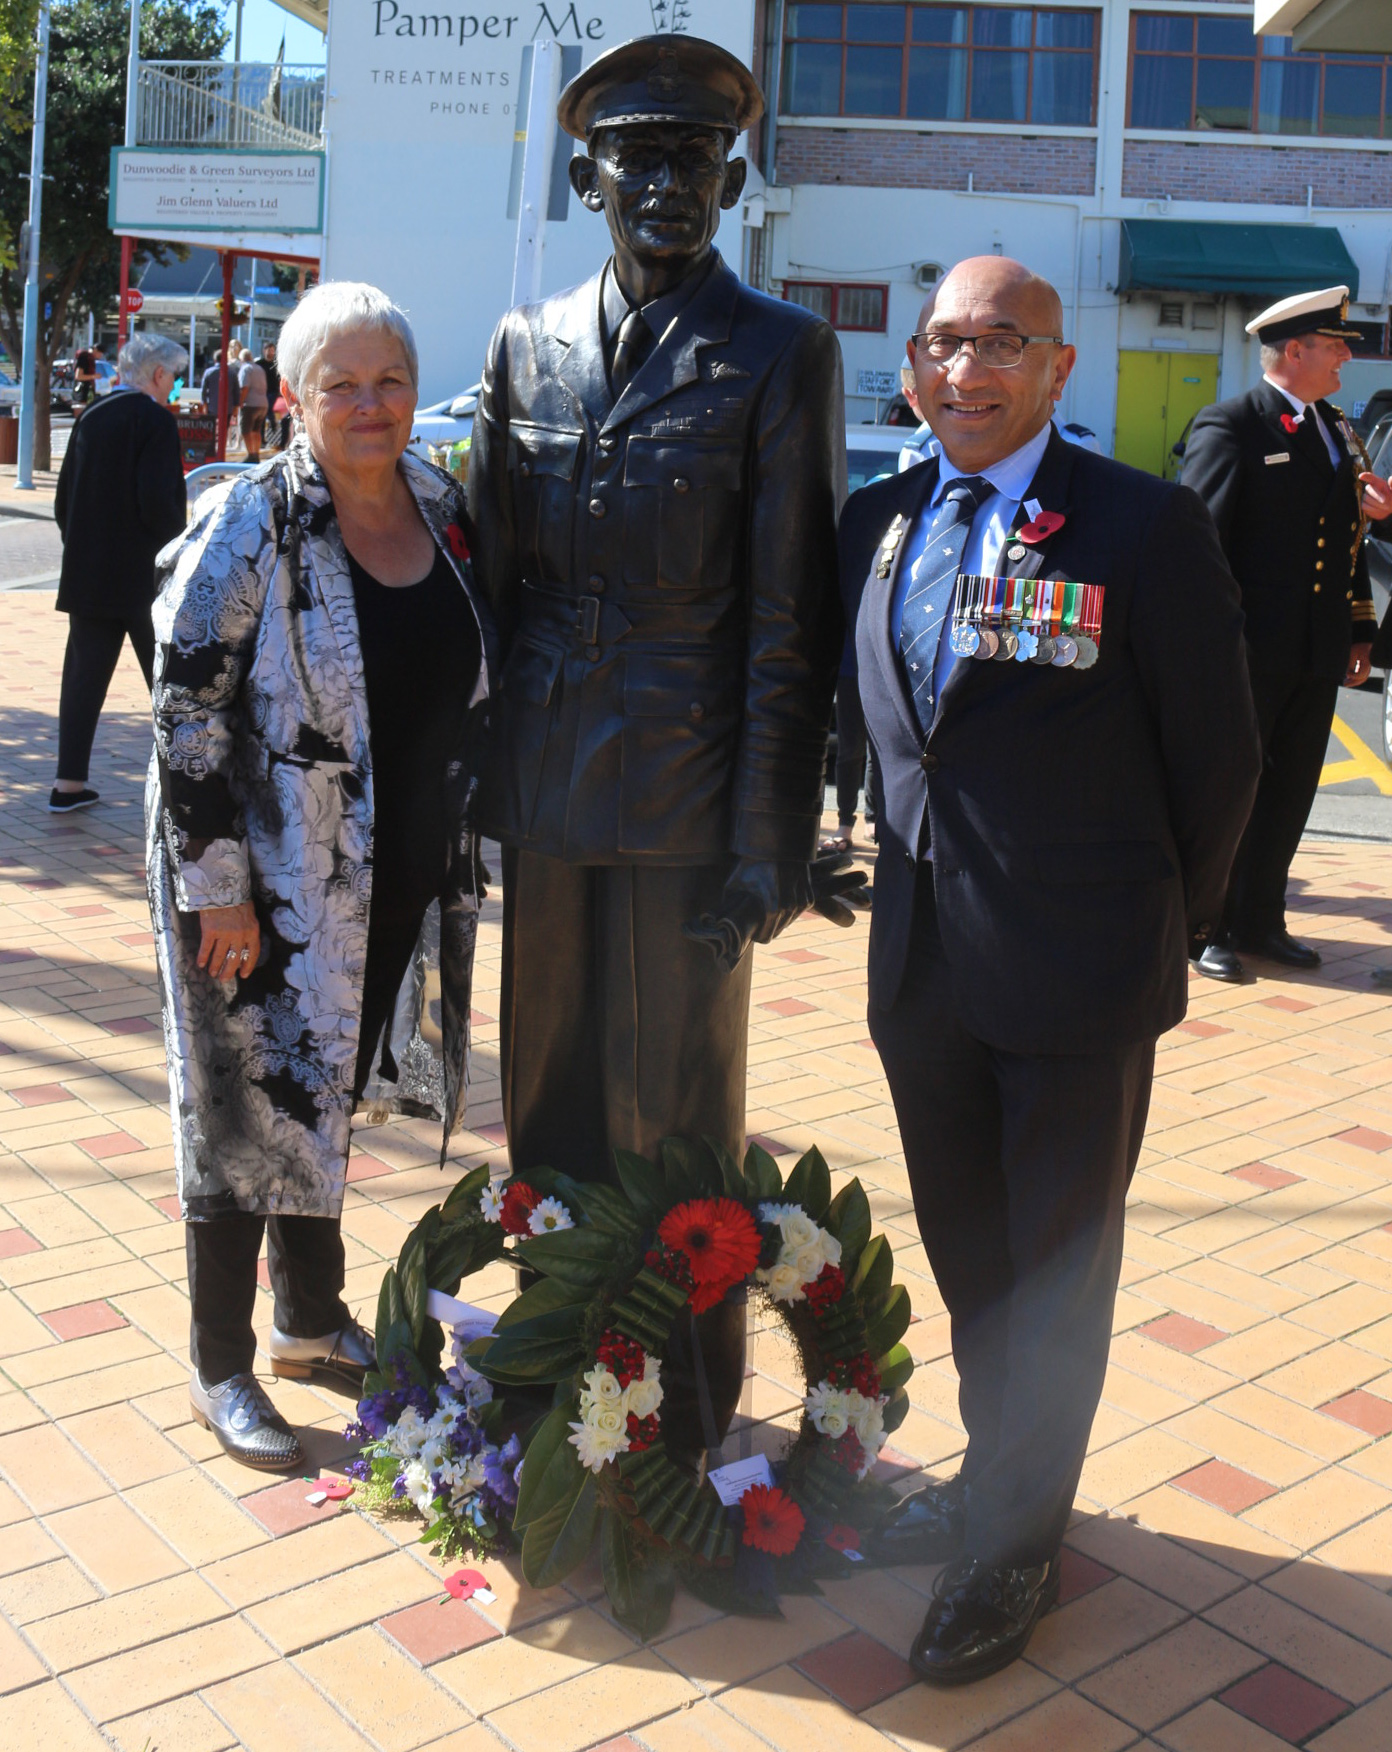 Thames Ward Councillor Sally Christie and Defence Minister Ron Mark flank the statue of Sir Keith Park